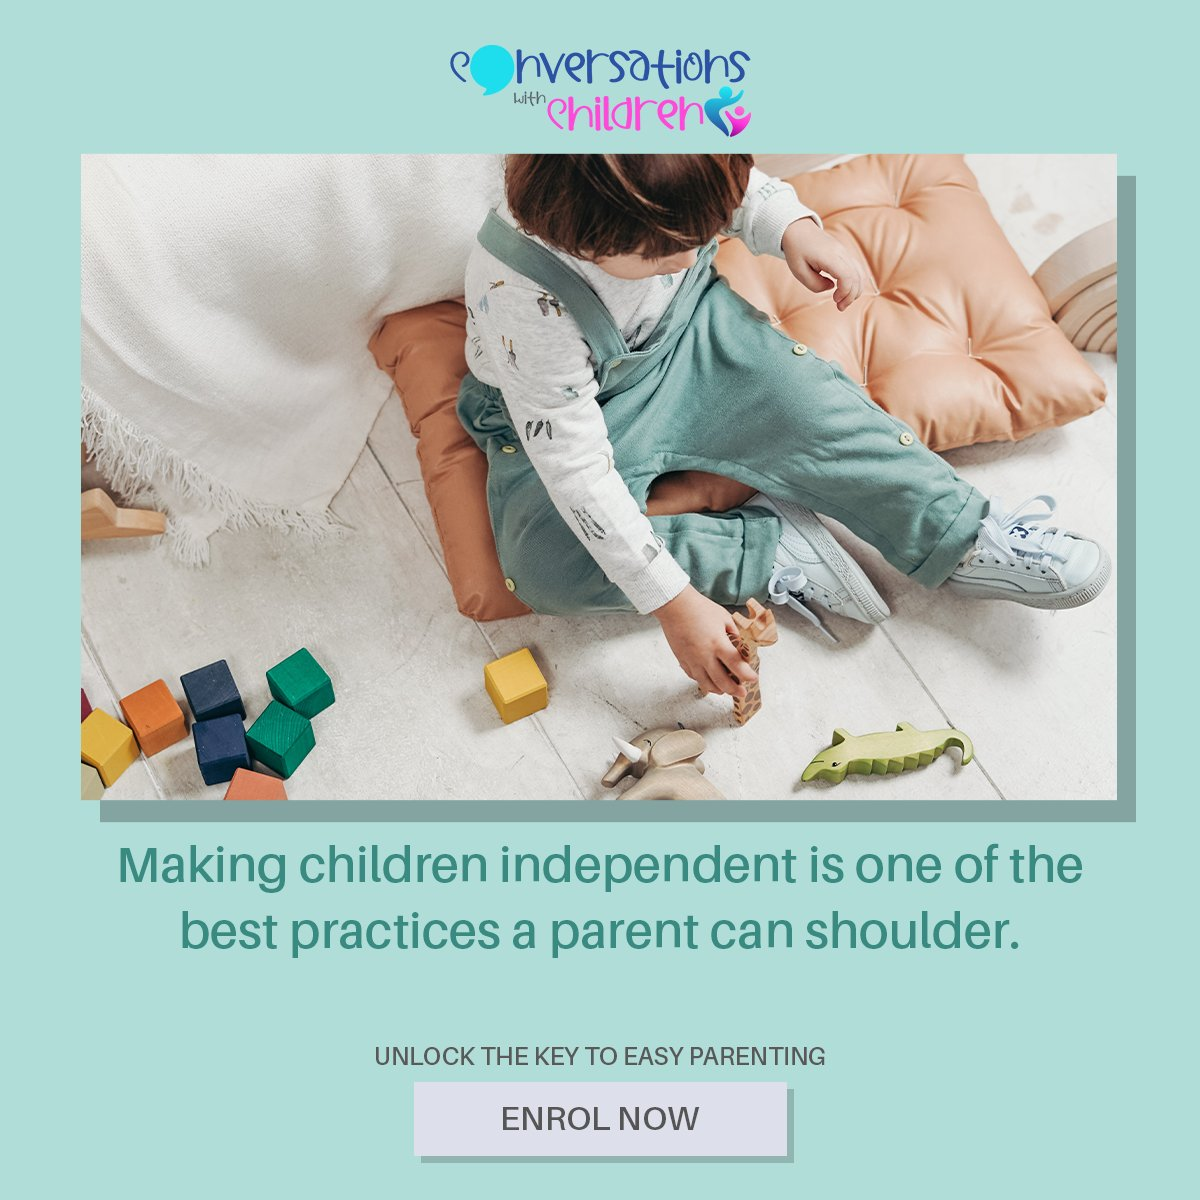 A confident, independent child is a dream for all the parents. Unlock the key to easy parenting. https://t.co/Z1ajAUcJNP  #elearning #parenting #children #newparents #understandingkids #parentingproblems #parentinghacks #parentingcourse #kids #newdad #happyparenting #kids https://t.co/KinhNbI6tr